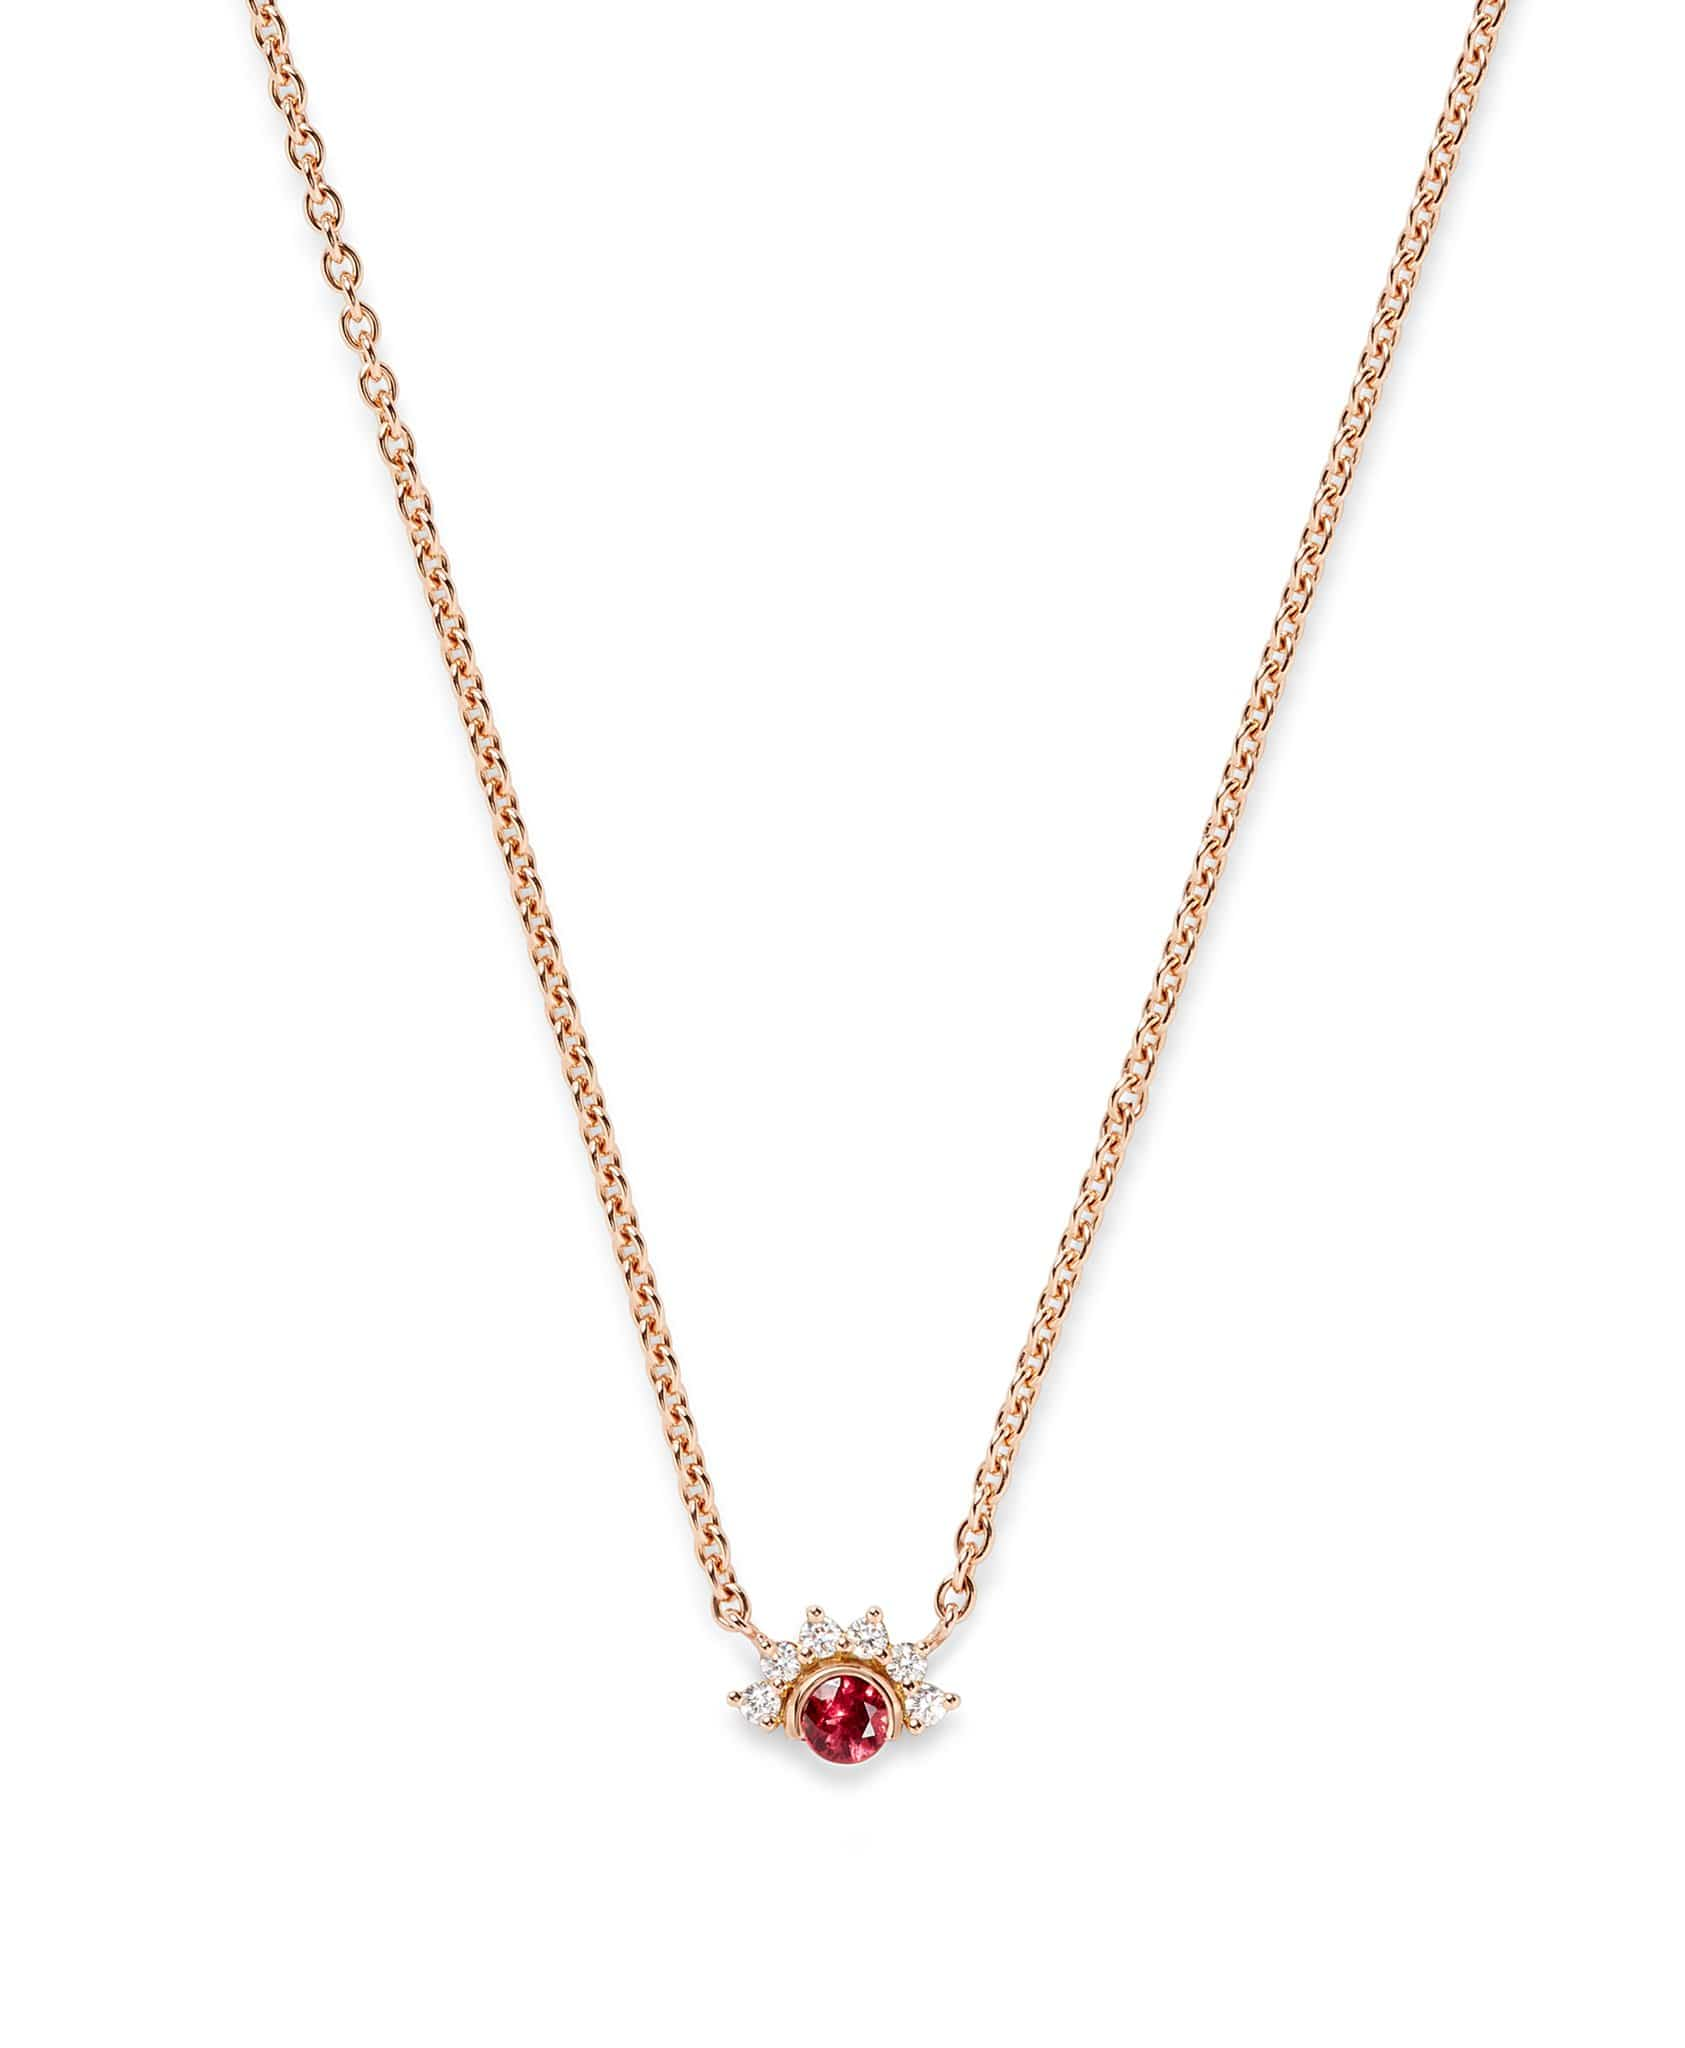 Red Spinel Pendant: Discover Luxury Fine Jewelry | Nouvel Heritage || Rose Gold